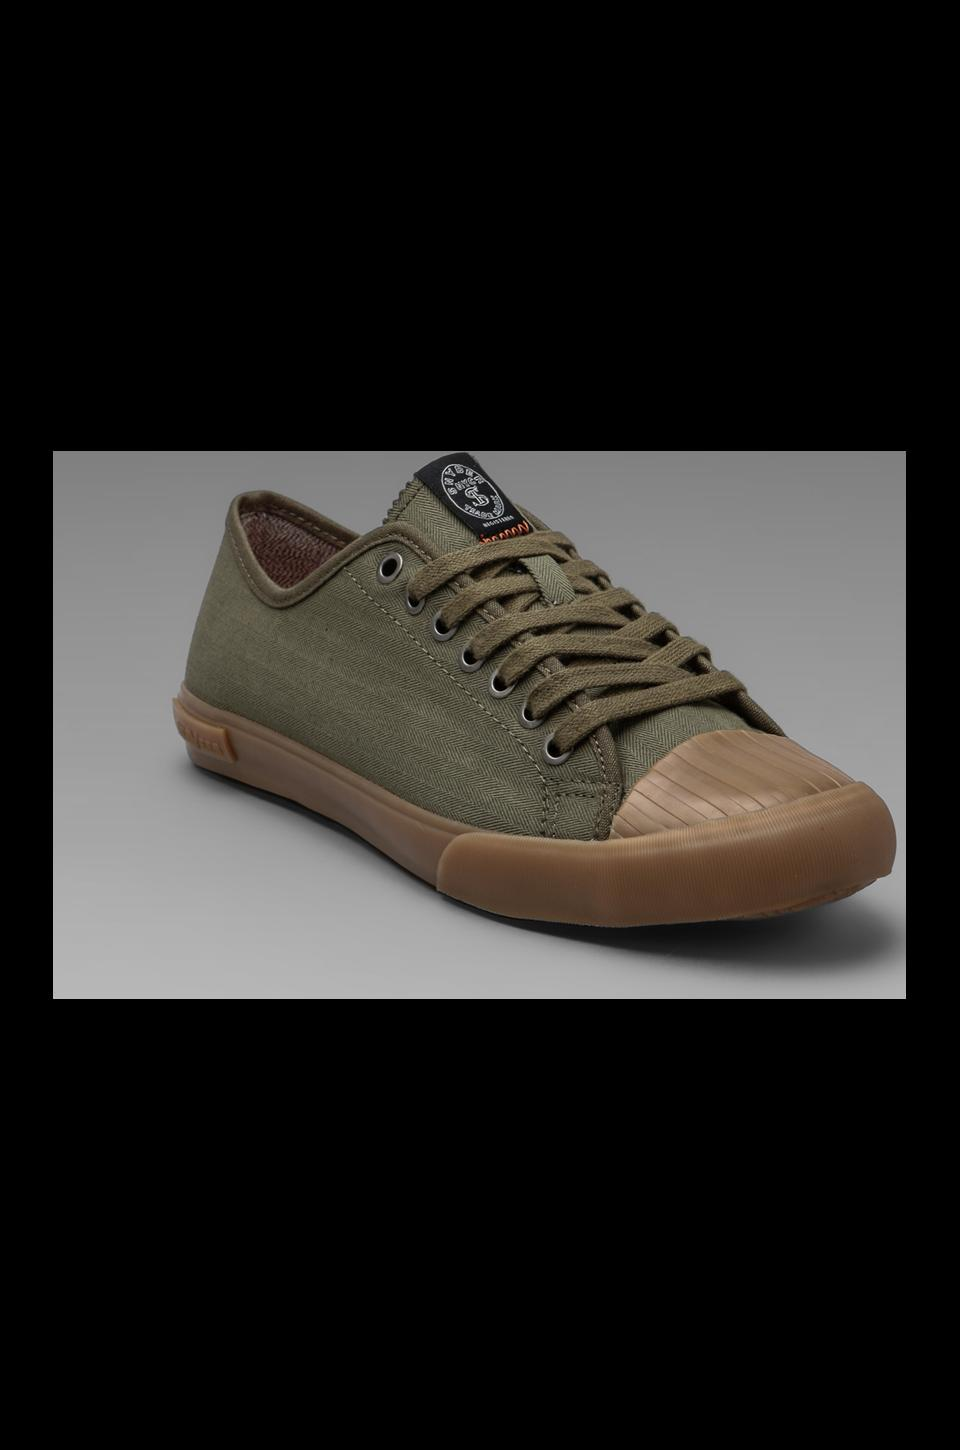 SeaVees x Todd Snyder Army Issue Low Top in Olive Herringbone